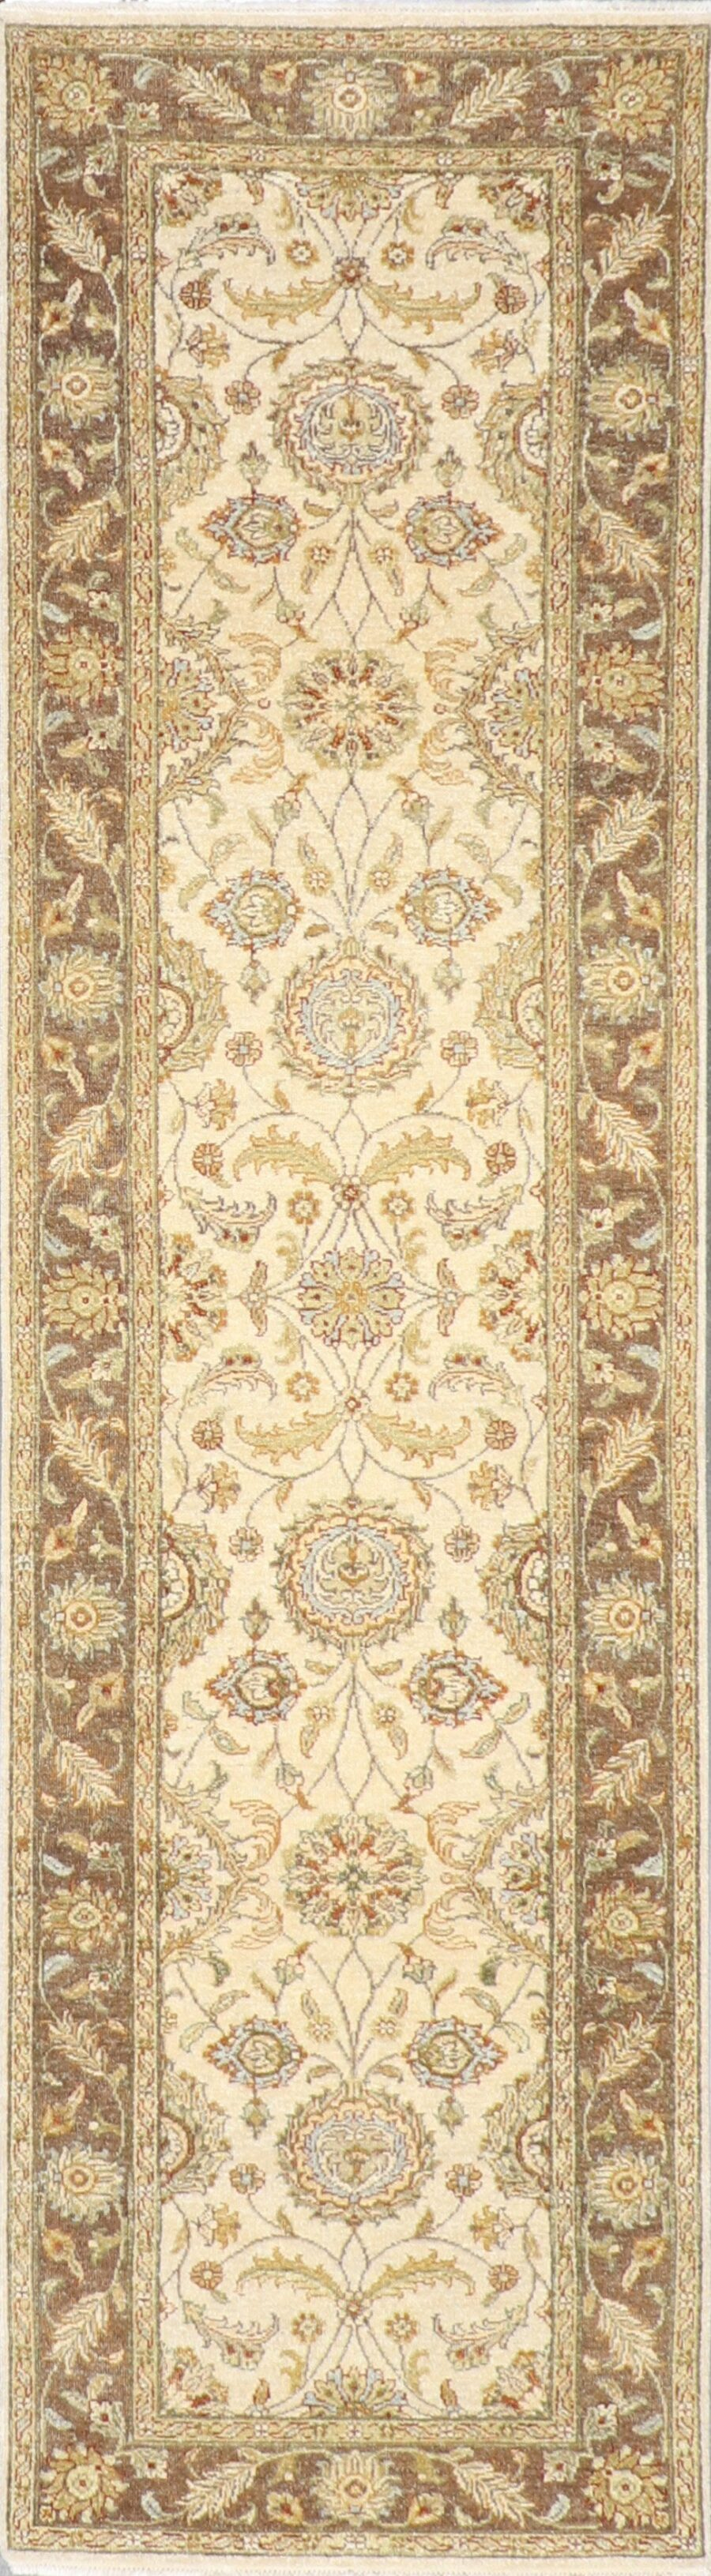 """2'7""""x9'9"""" Decorative Tan Hand Spun Wool Hand-Knotted Rug - Direct Rug Import   Rugs in Chicago, Indiana,South Bend,Granger"""